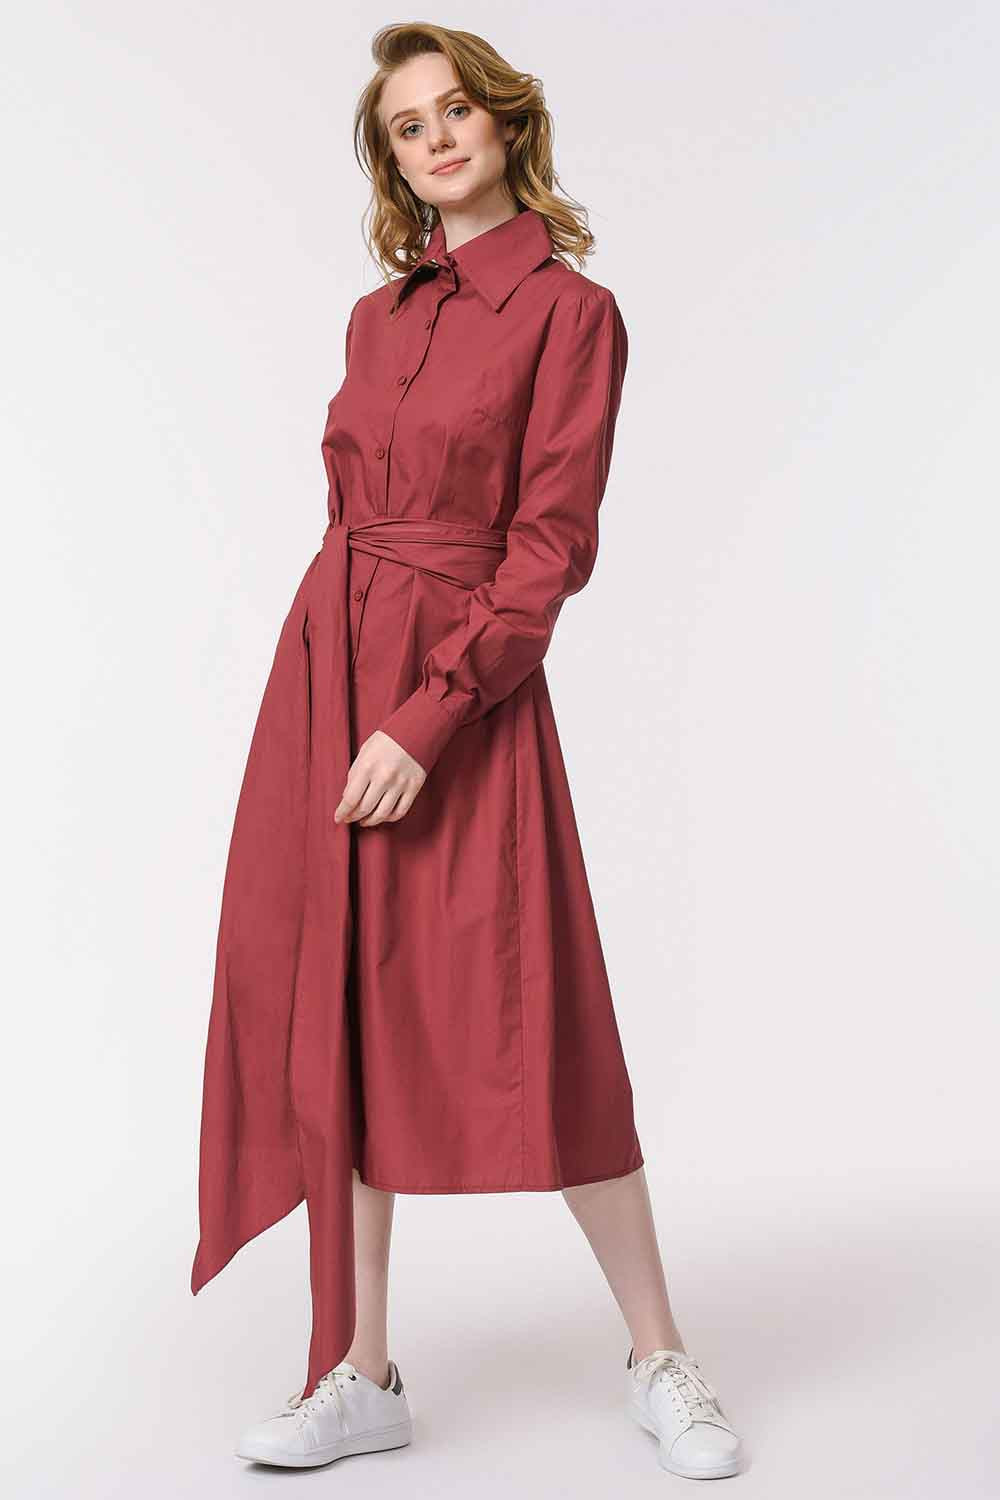 MIZALLE Vertical Collar Shirt Dress (Claret Red) (1)